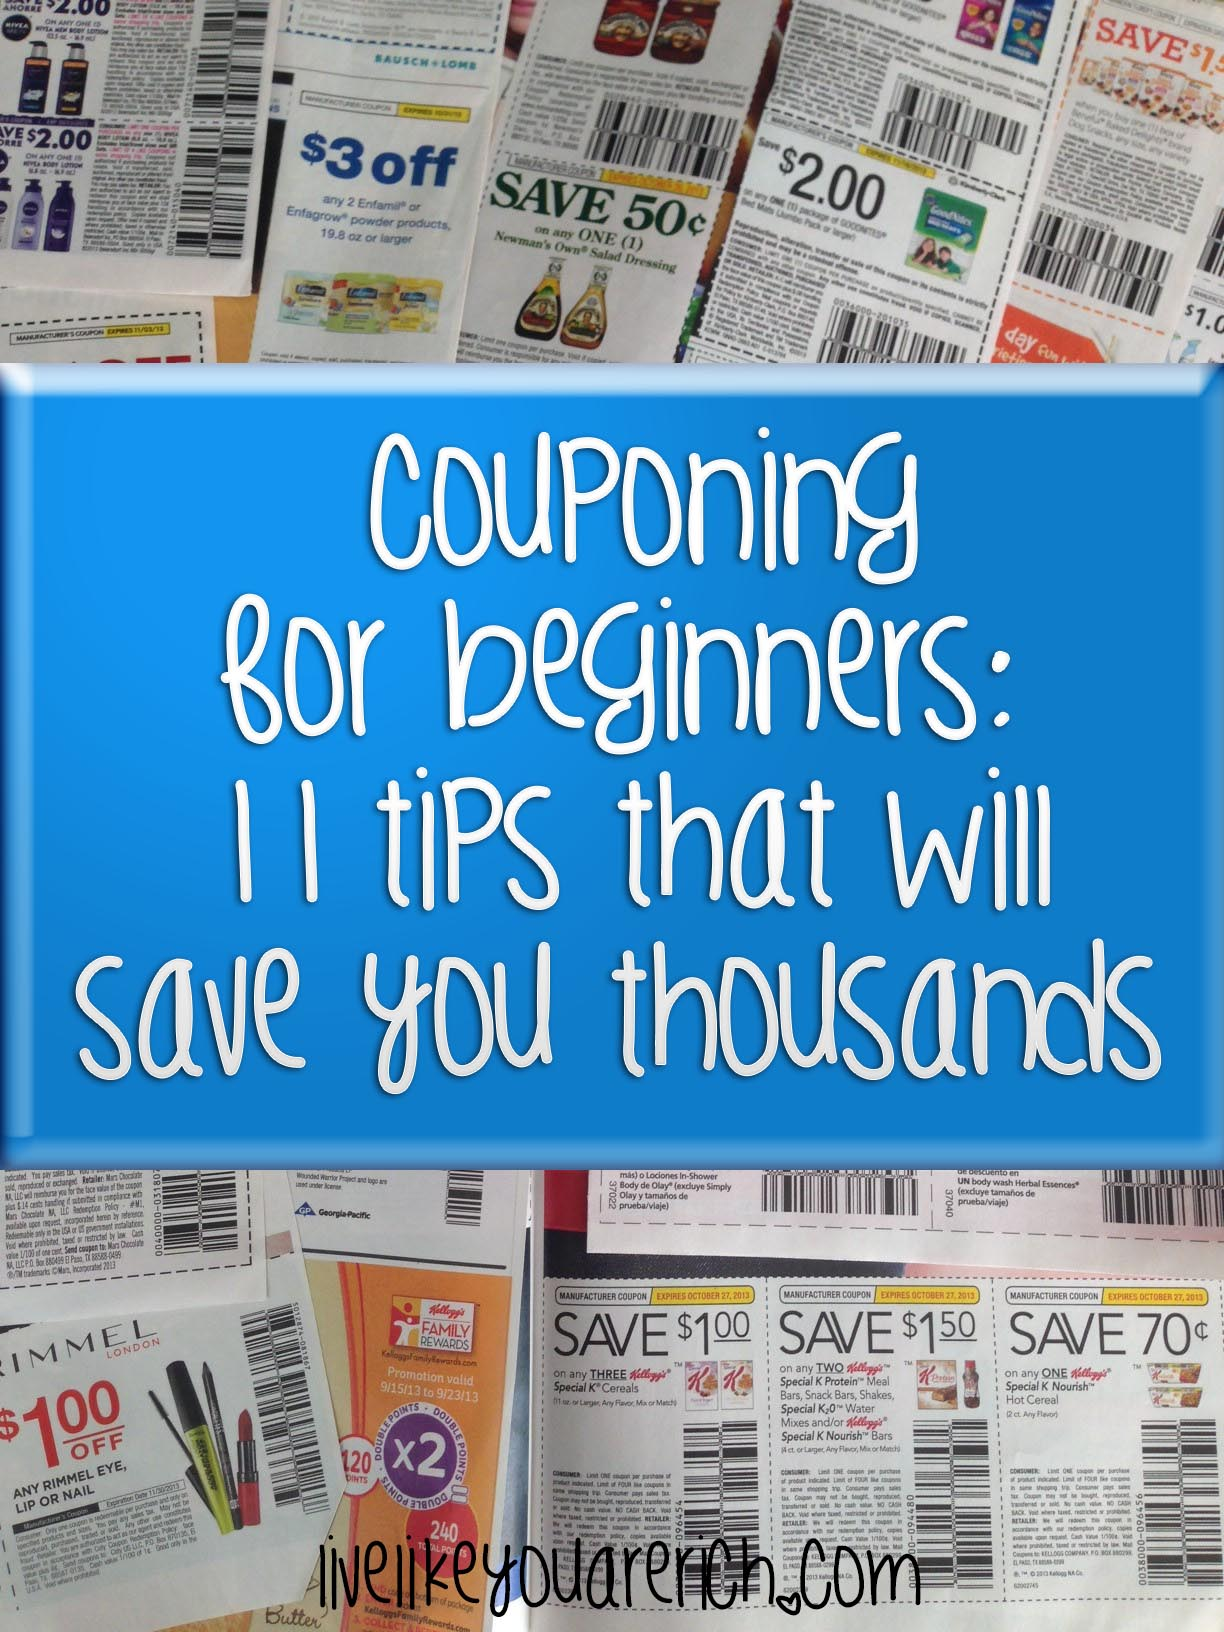 1. The Coupons App